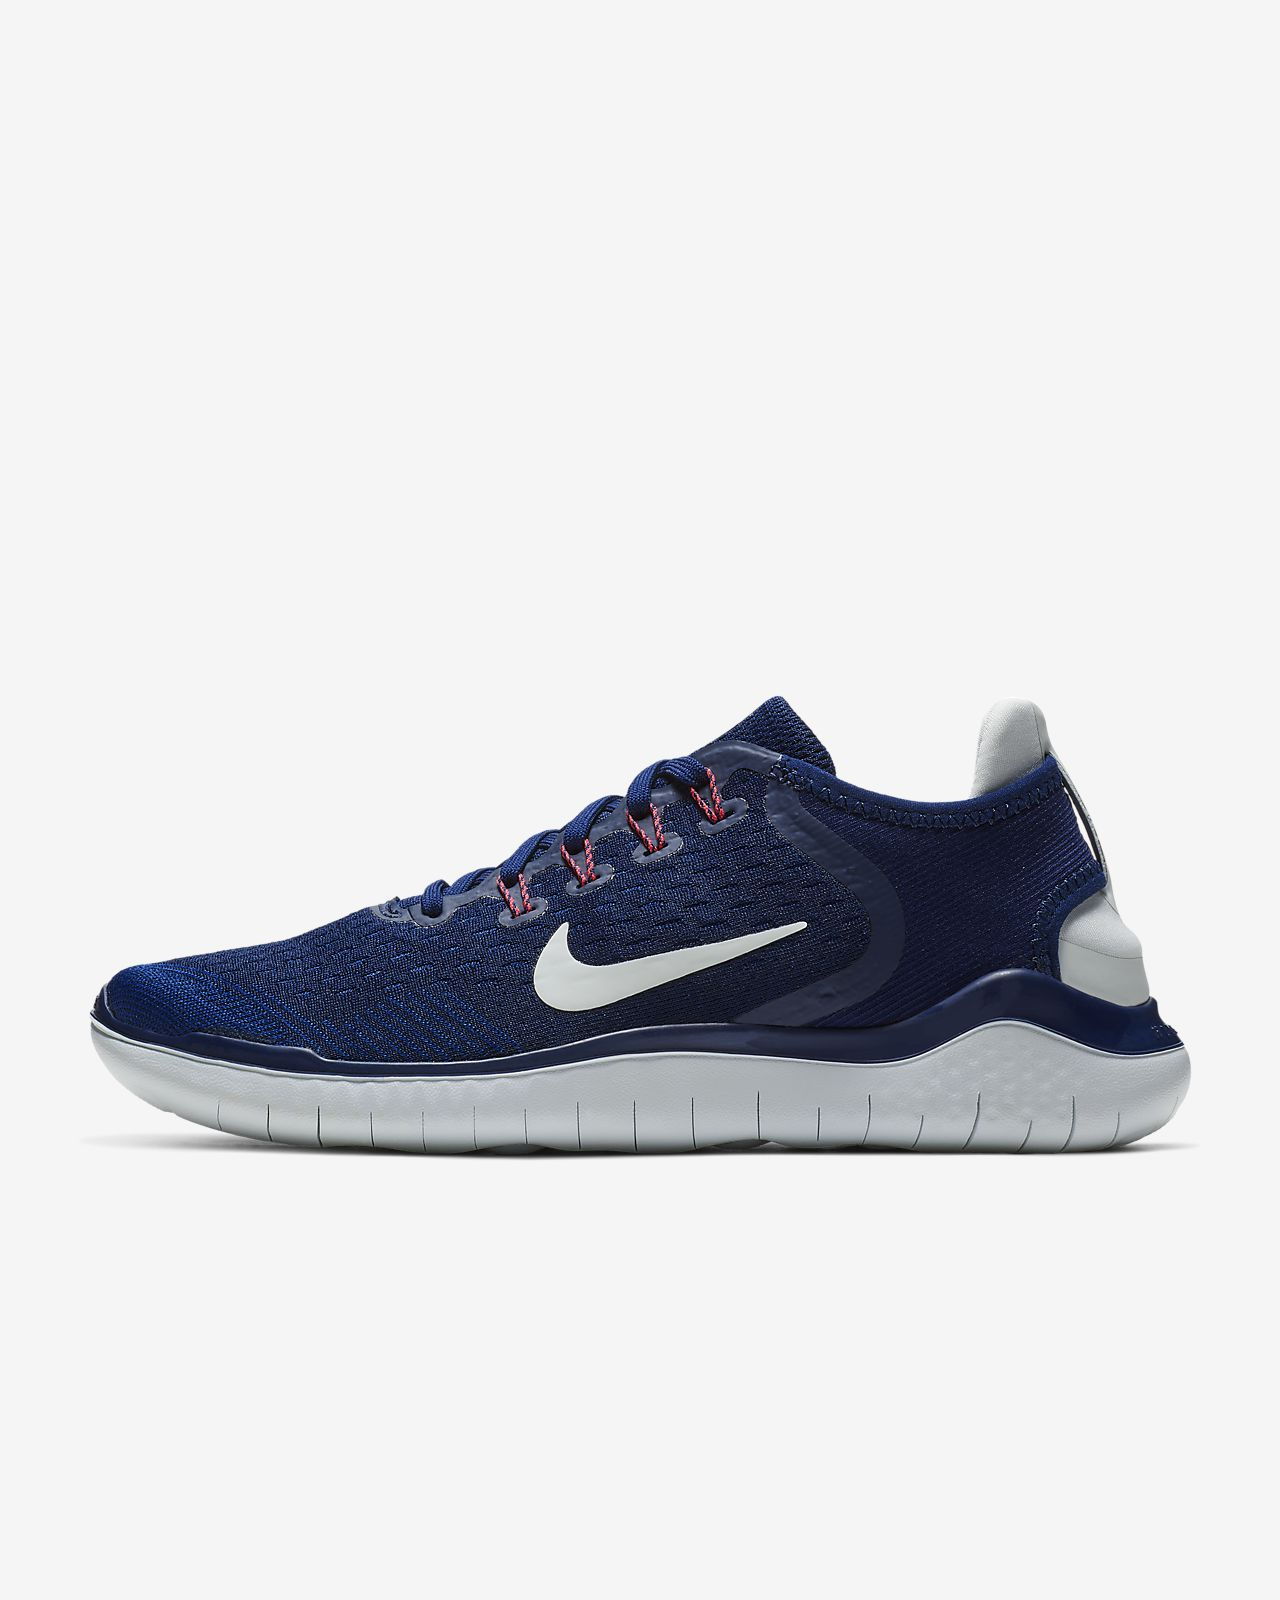 best loved 6f886 5327c ... Nike Free RN 2018 Women s Running Shoe